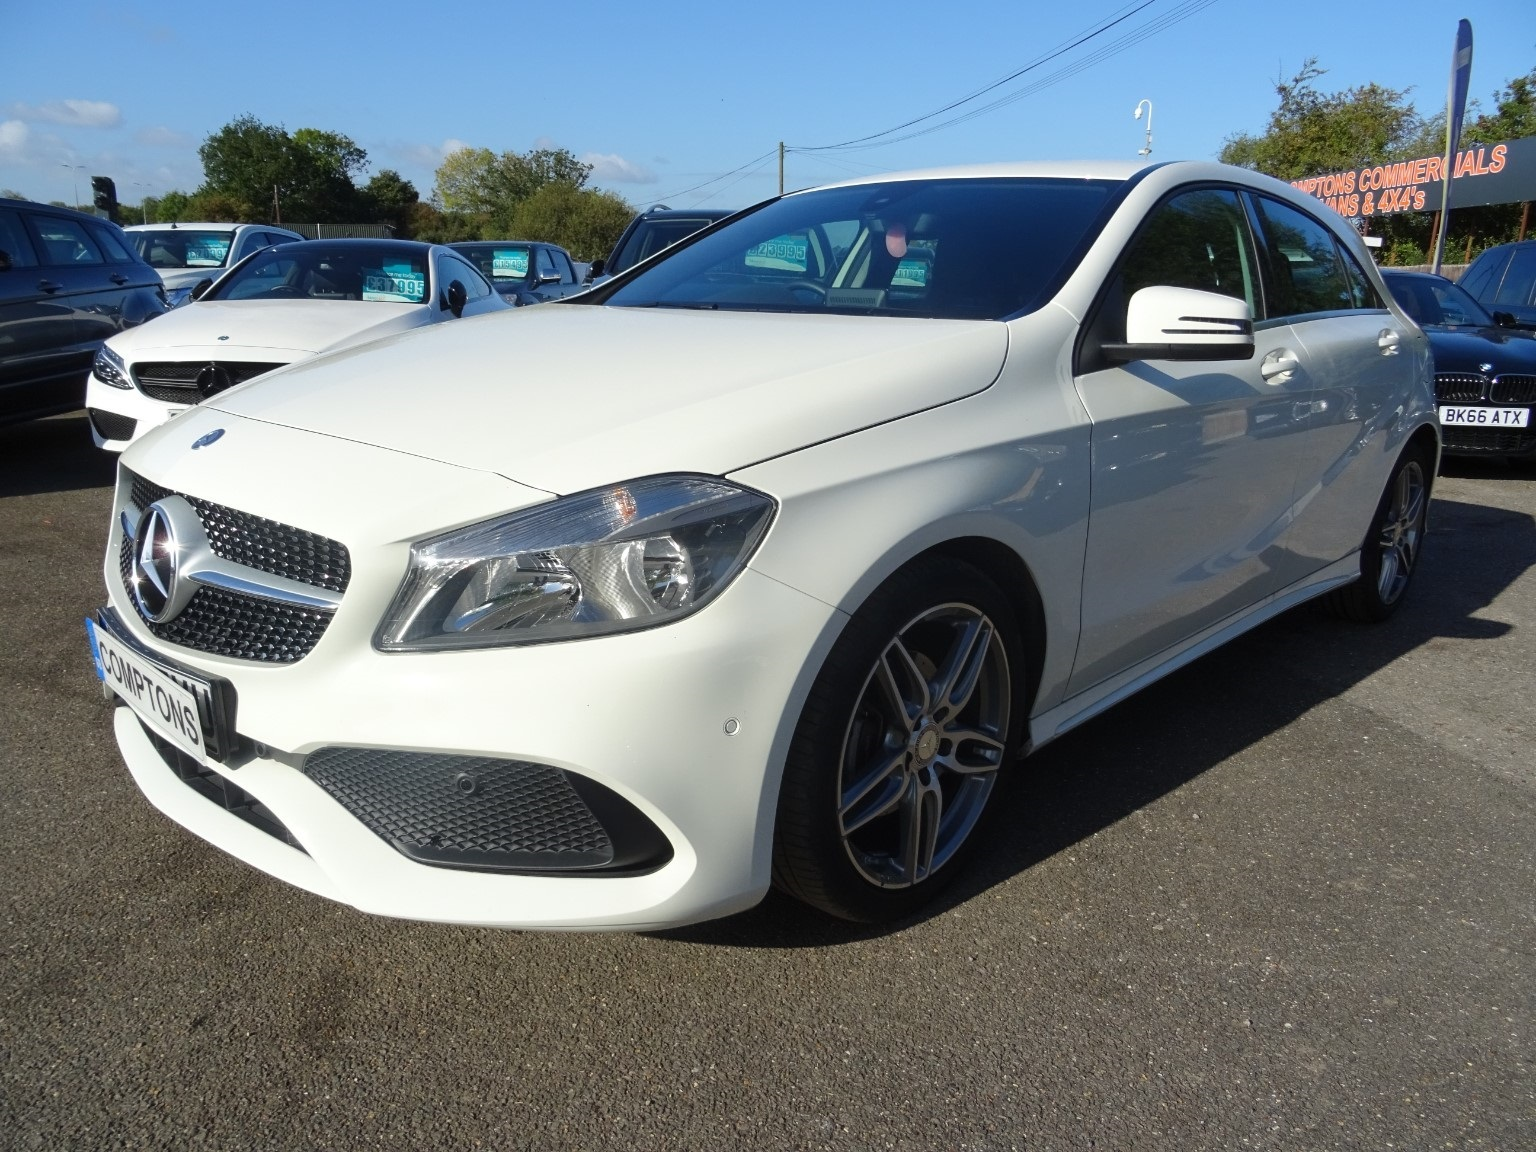 Mercedes-Benz A Class 1.5 A 180 D Amg Line Executive 5dr Hatchback Diesel White